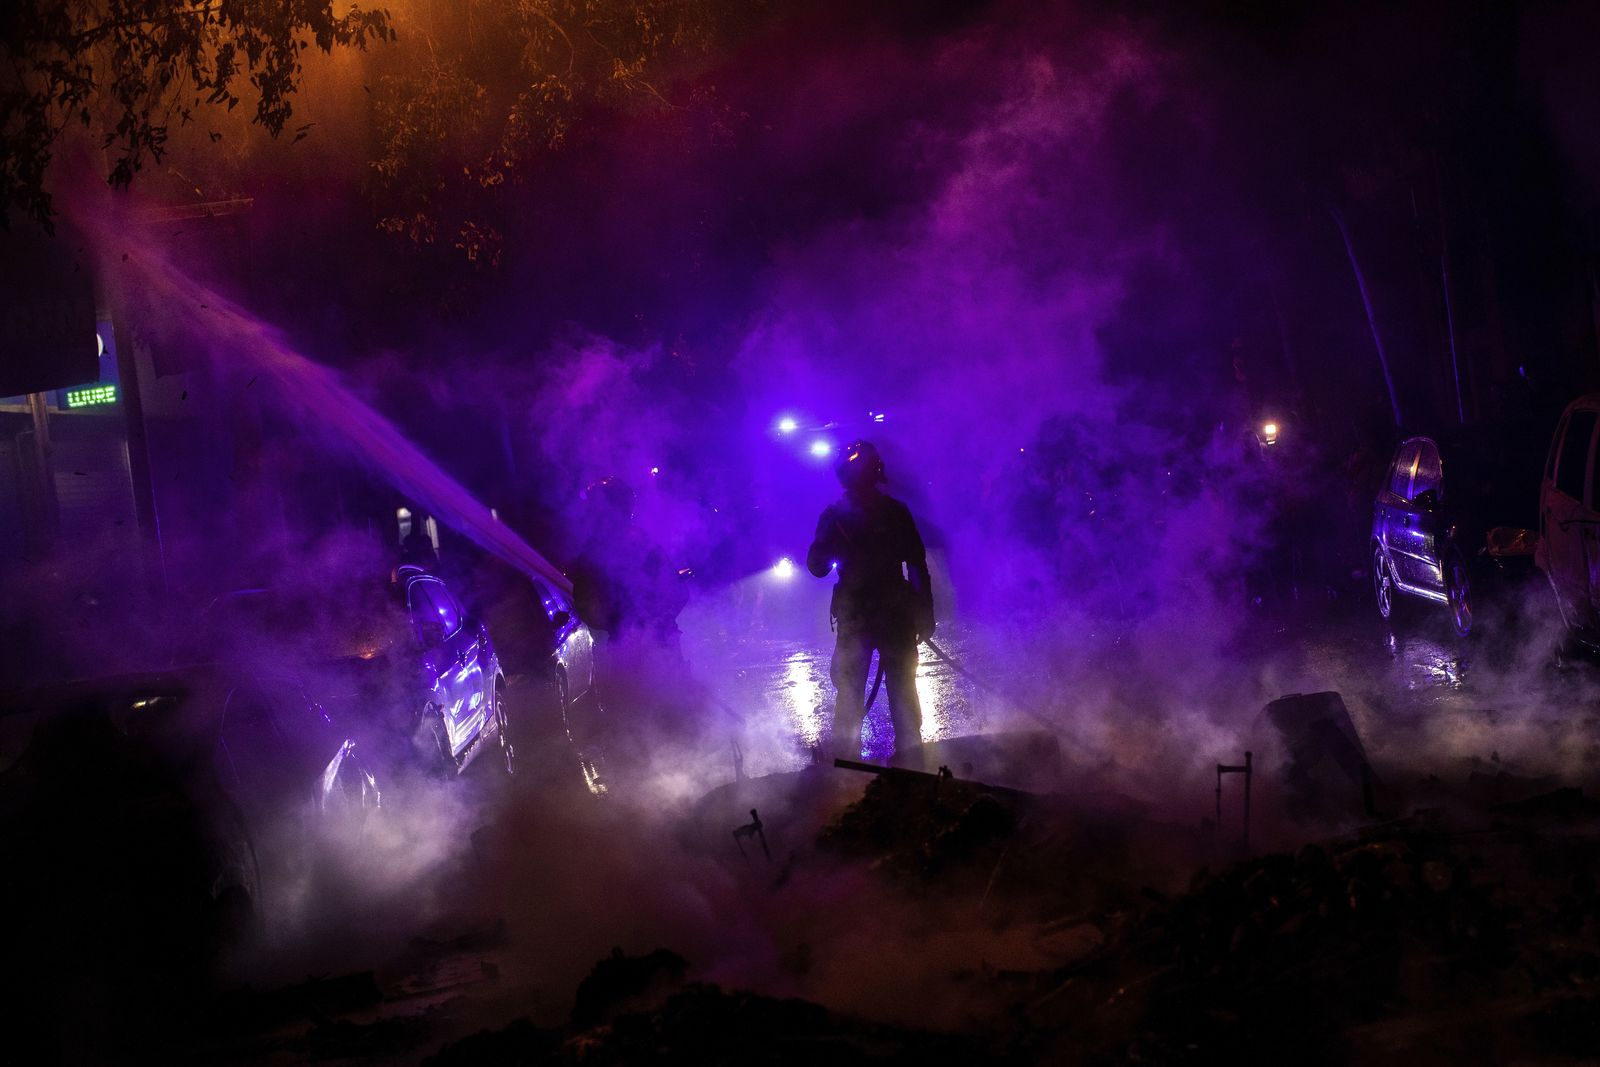 Firefighters try to put out fires on the street during clashes between protestors and police in Barcelona, Spain, Wednesday, Oct. 16, 2019.{ } (AP Photo/Bernat Armangue)